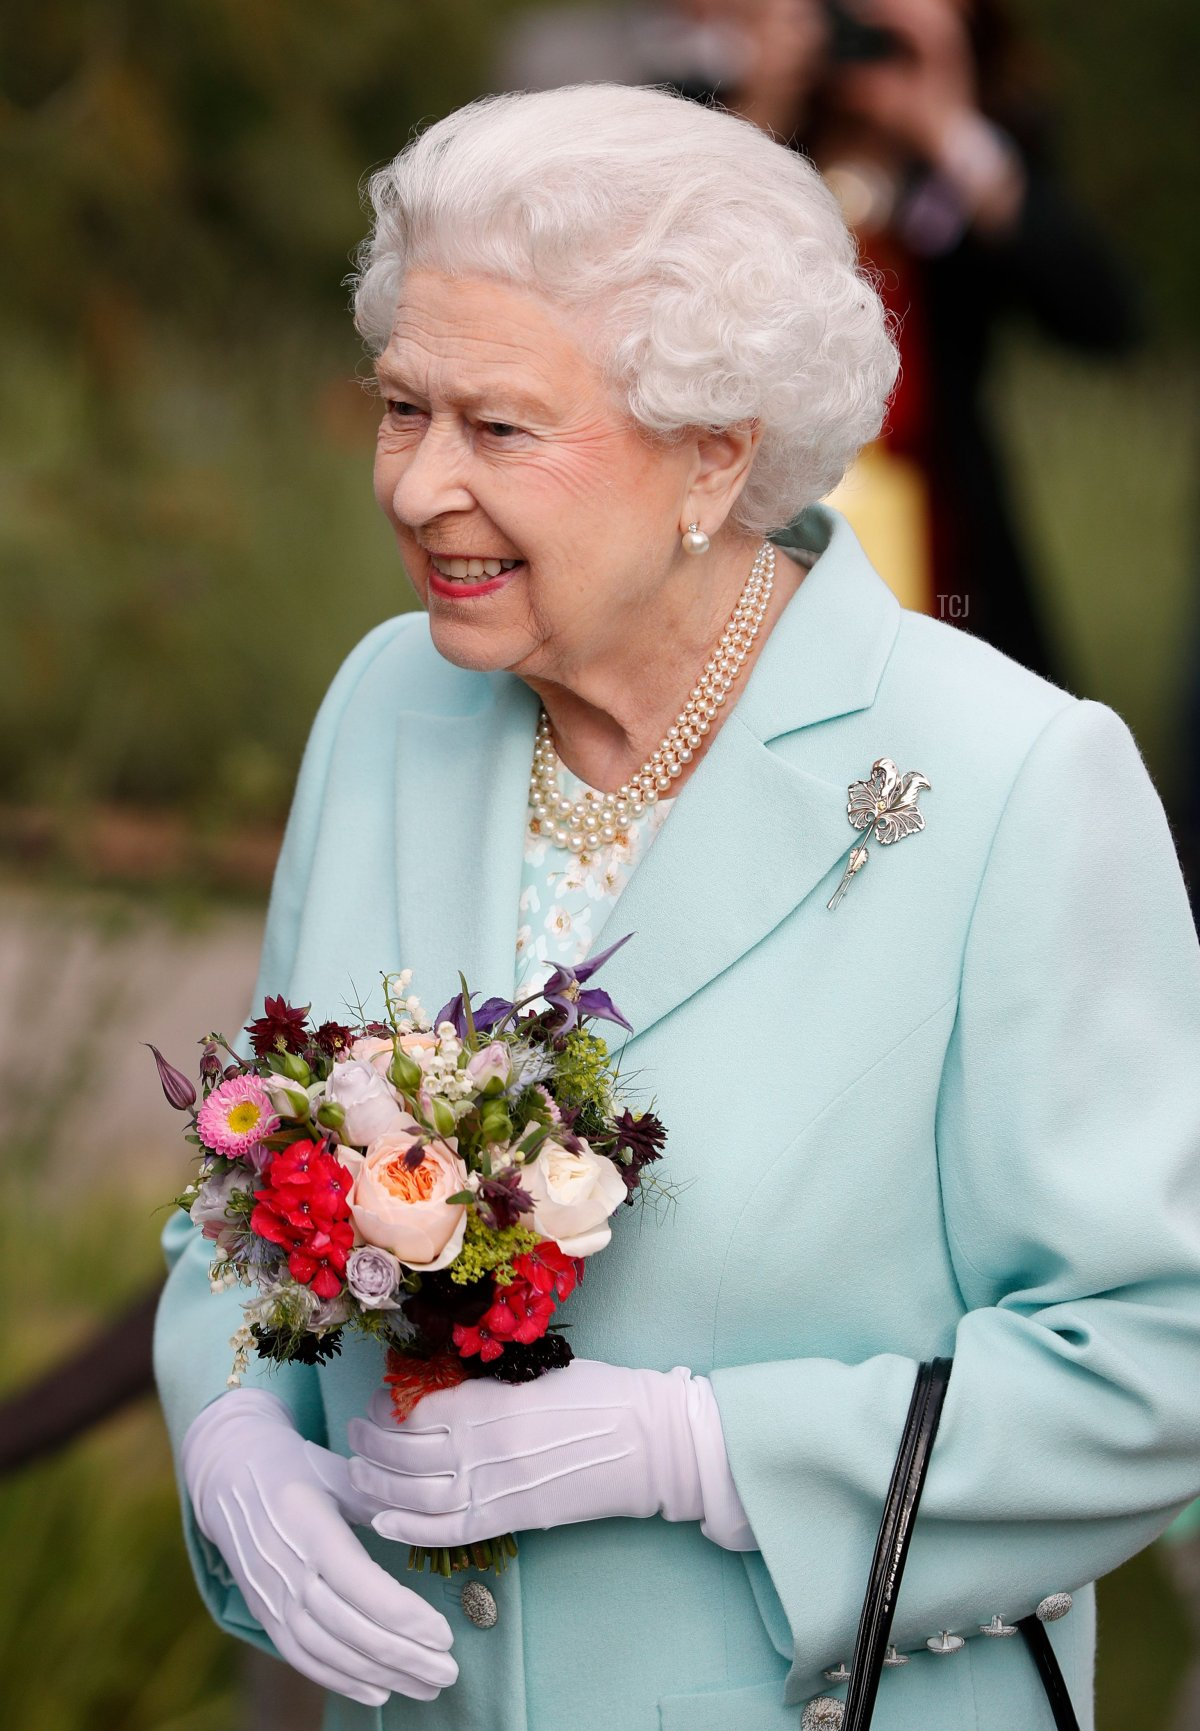 Britain's Queen Elizabeth II arrives at the 2016 Chelsea Flower Show in central London on May 23, 2016